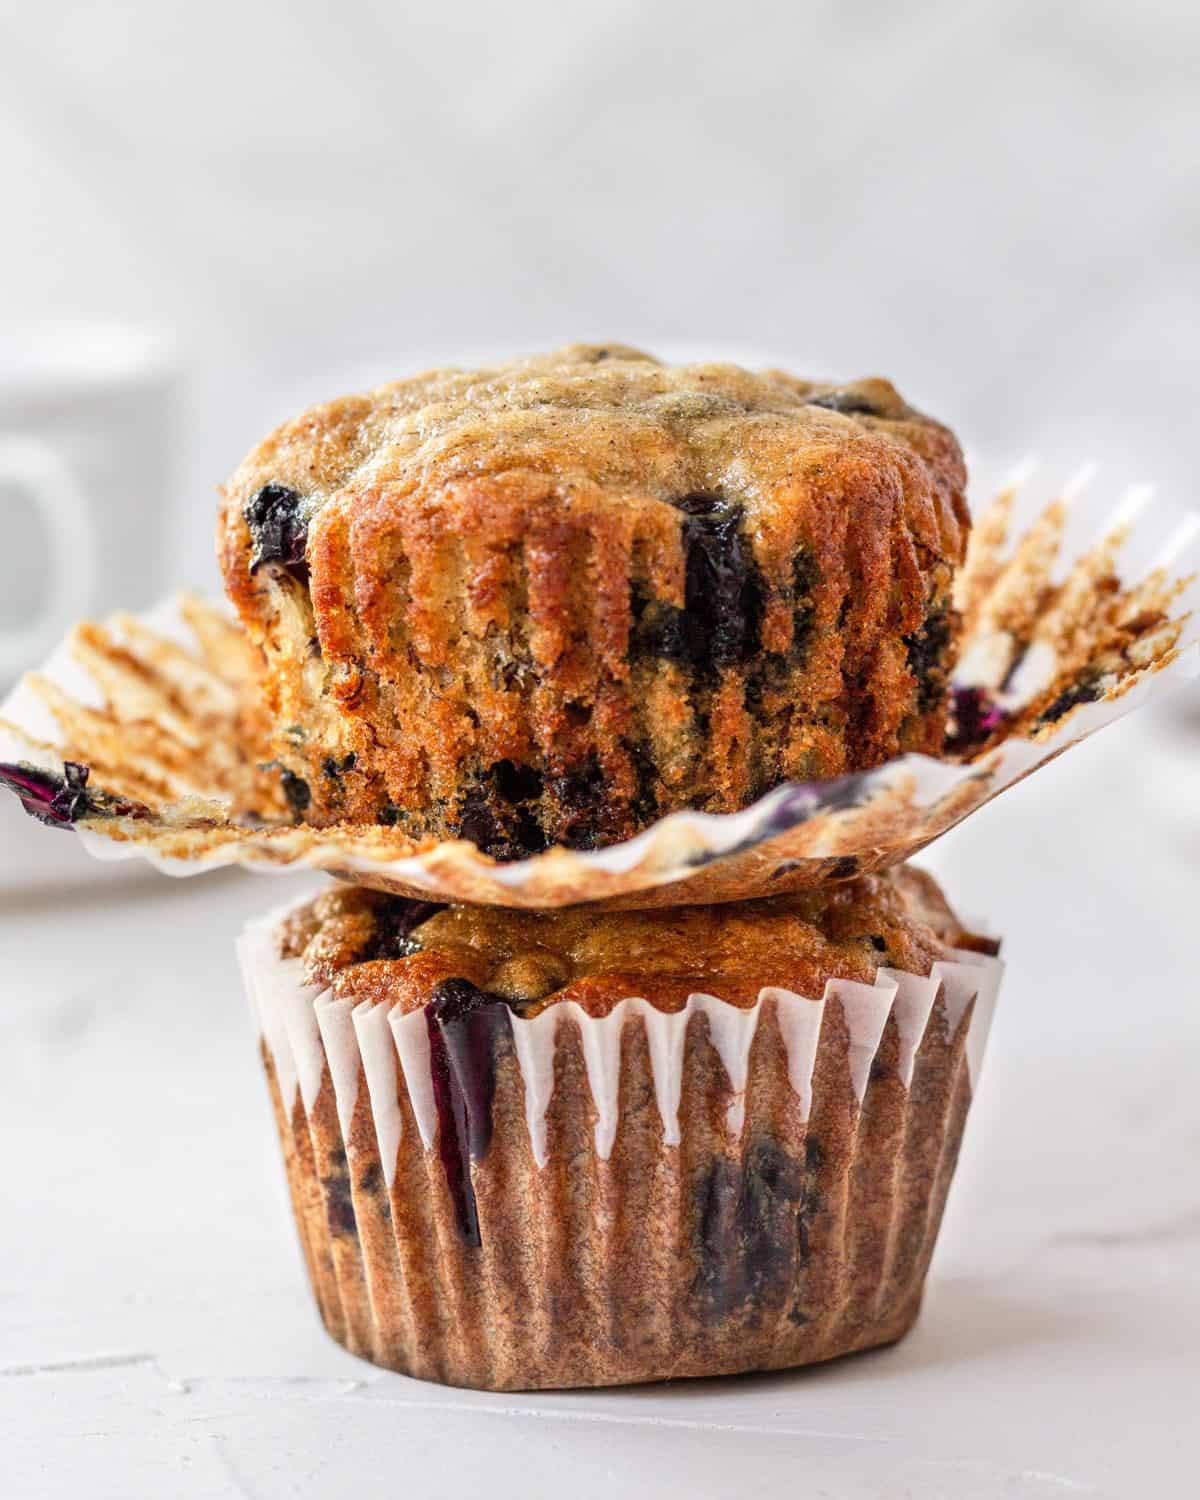 two banana blueberry muffins stacked on top of one another, top one has the wrapped pulled down.